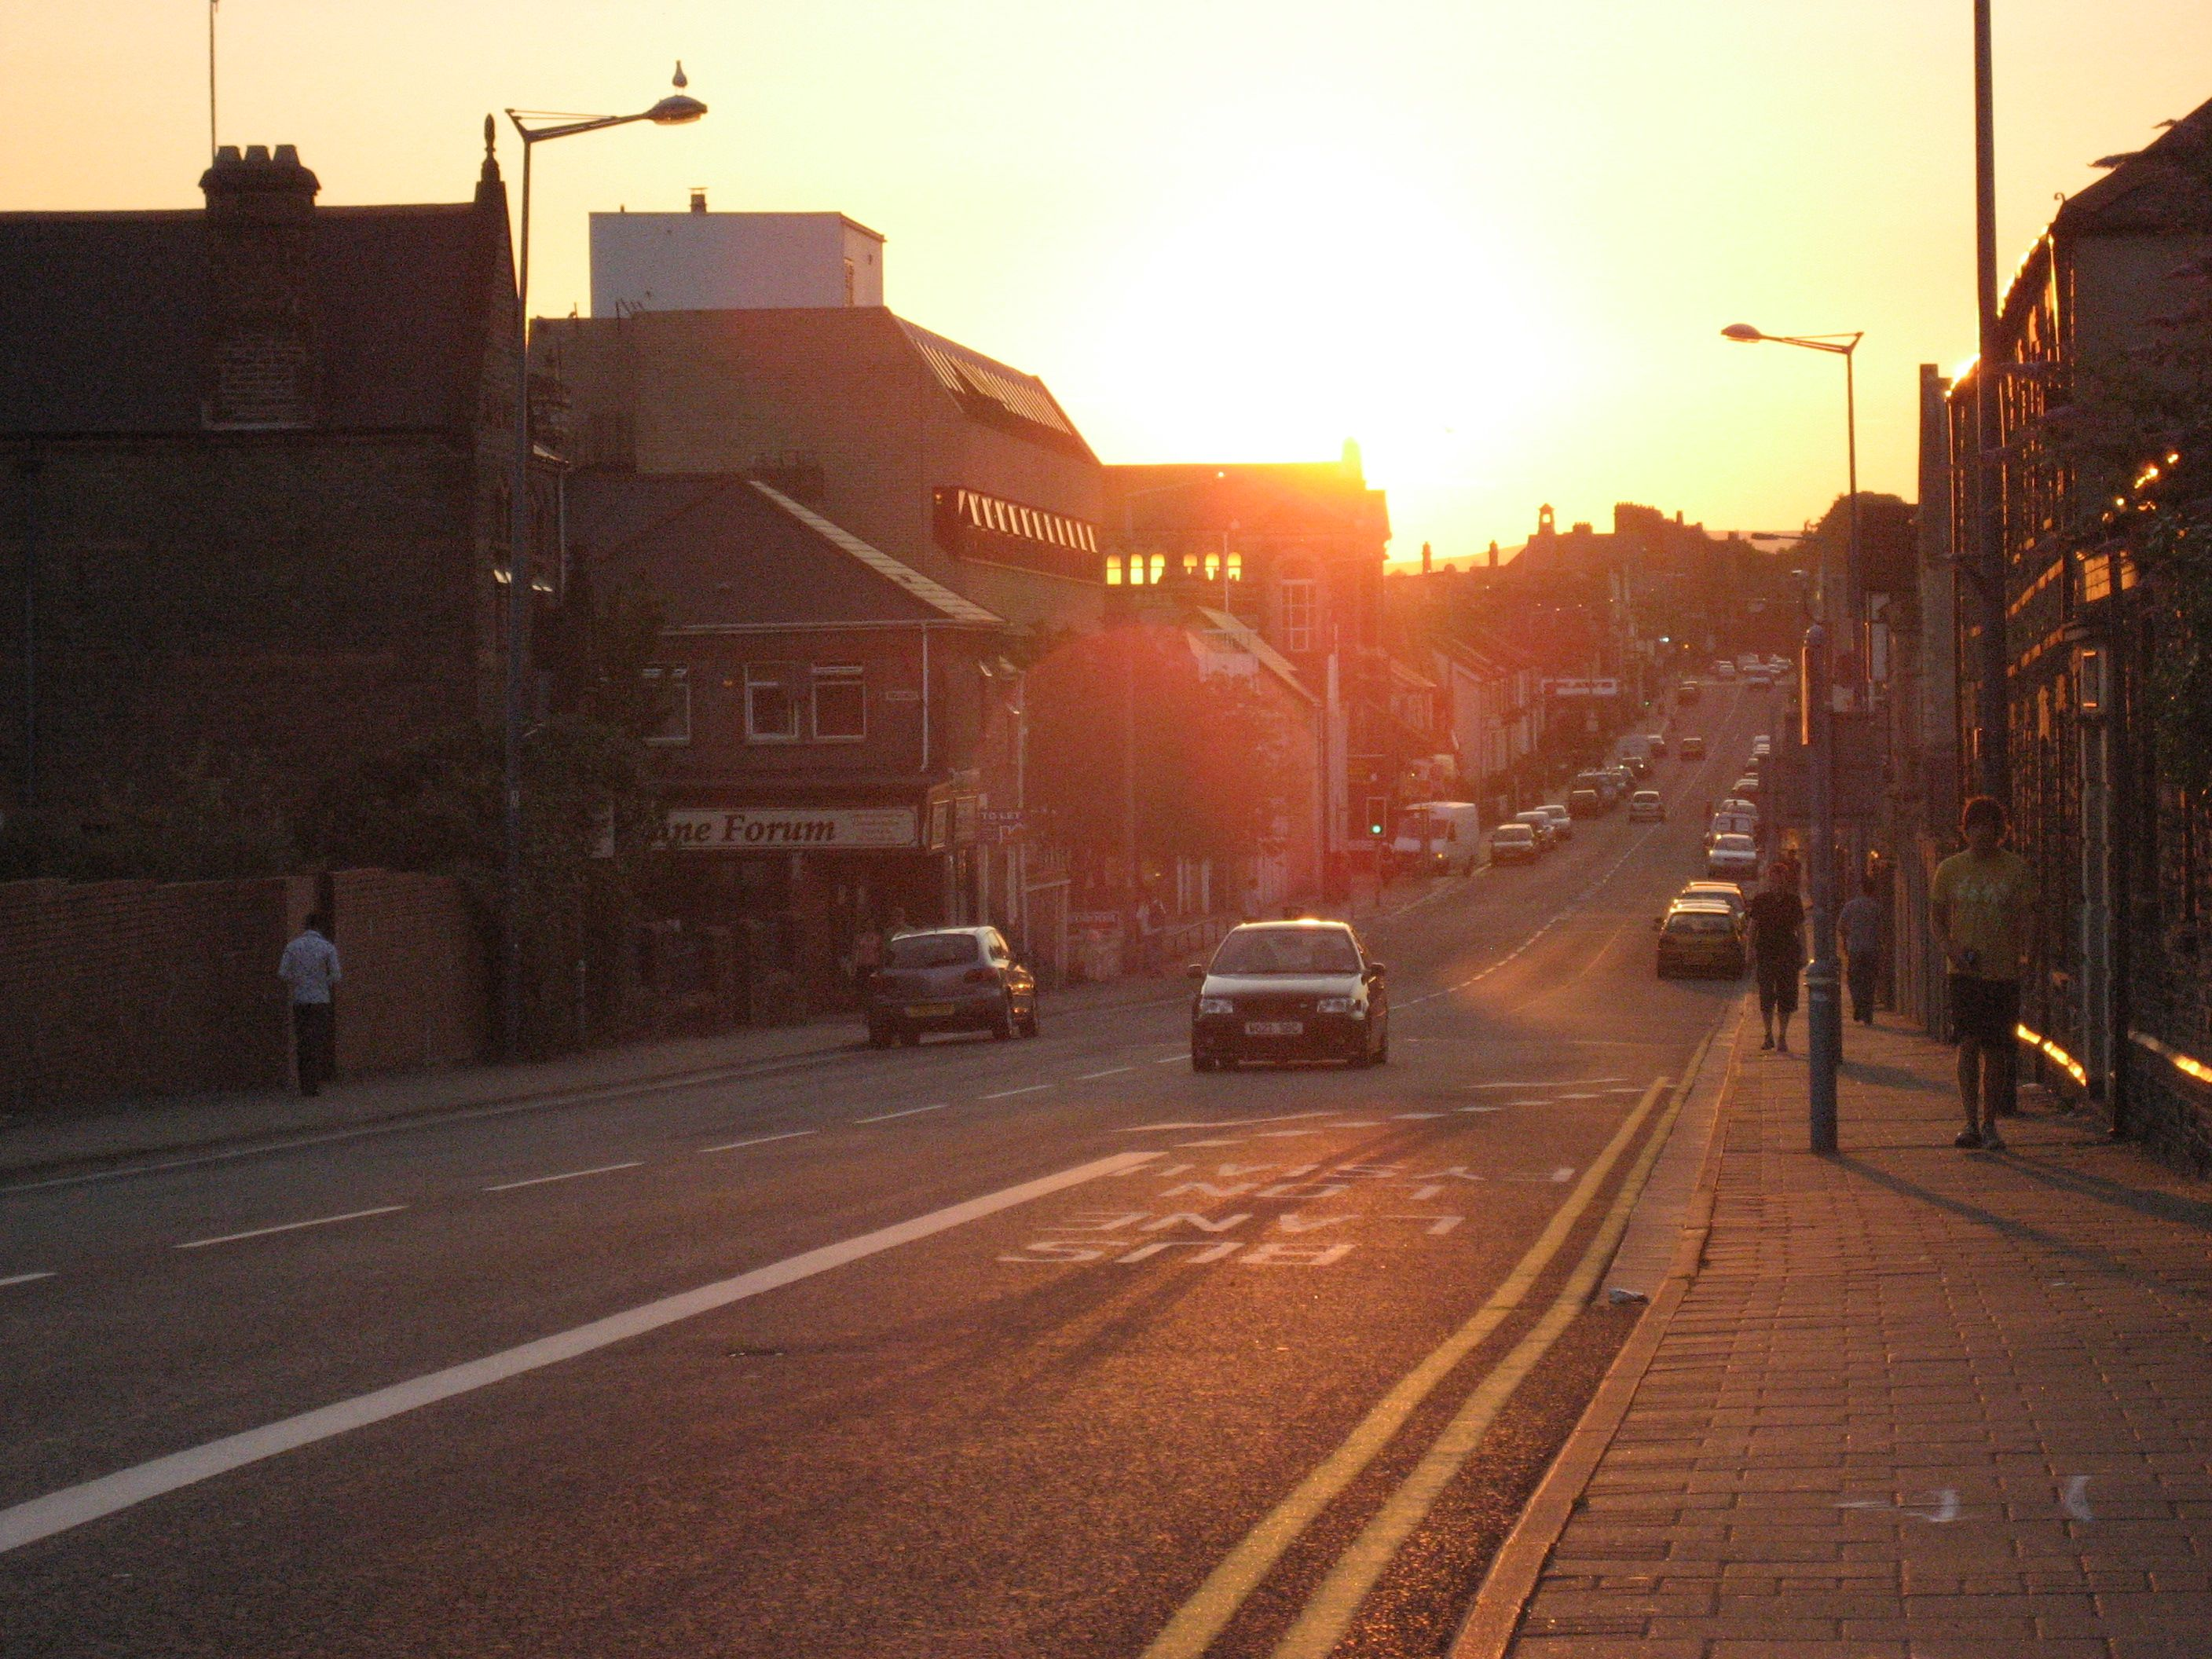 Sunset on Crwys Road, Cardiff